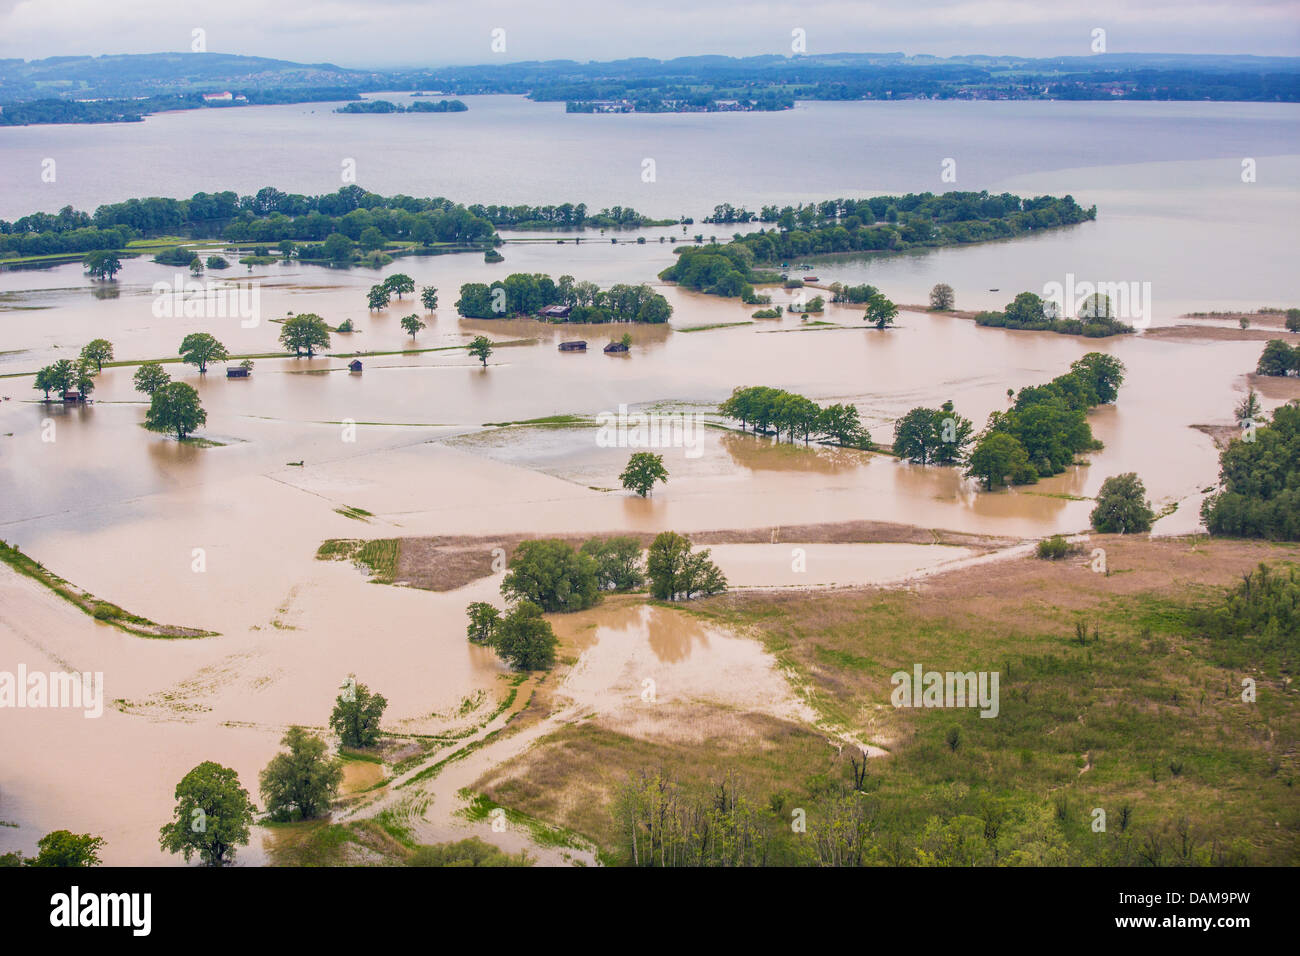 Lachsgang und Feldwieserbucht at lake Chiemsee flooded in June 2013, Germany, Bavaria, Lake Chiemsee - Stock Image